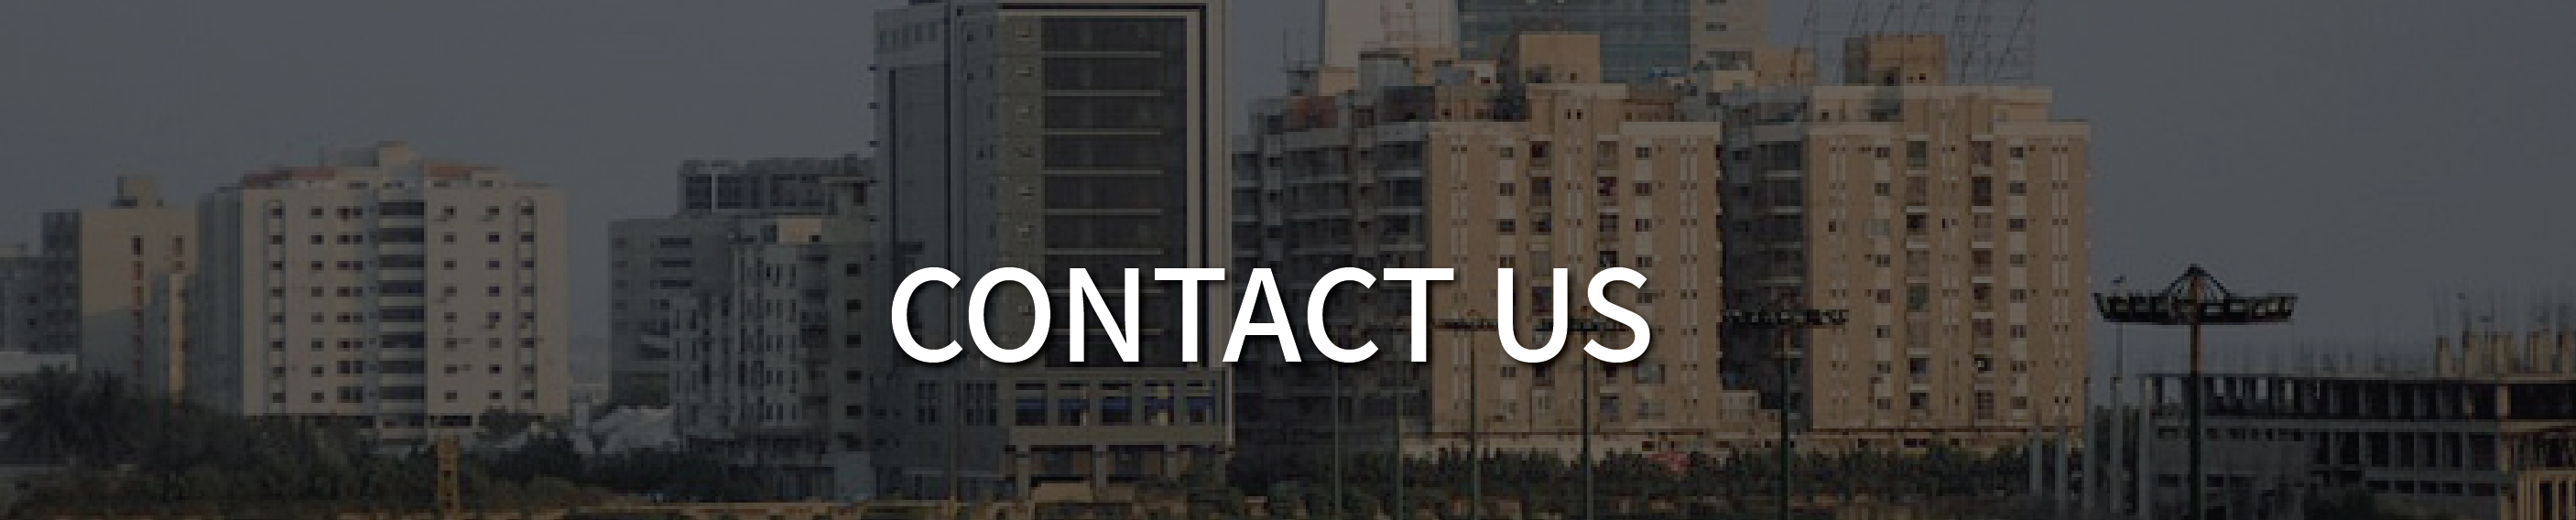 Contact us Fusion4 Terminal one